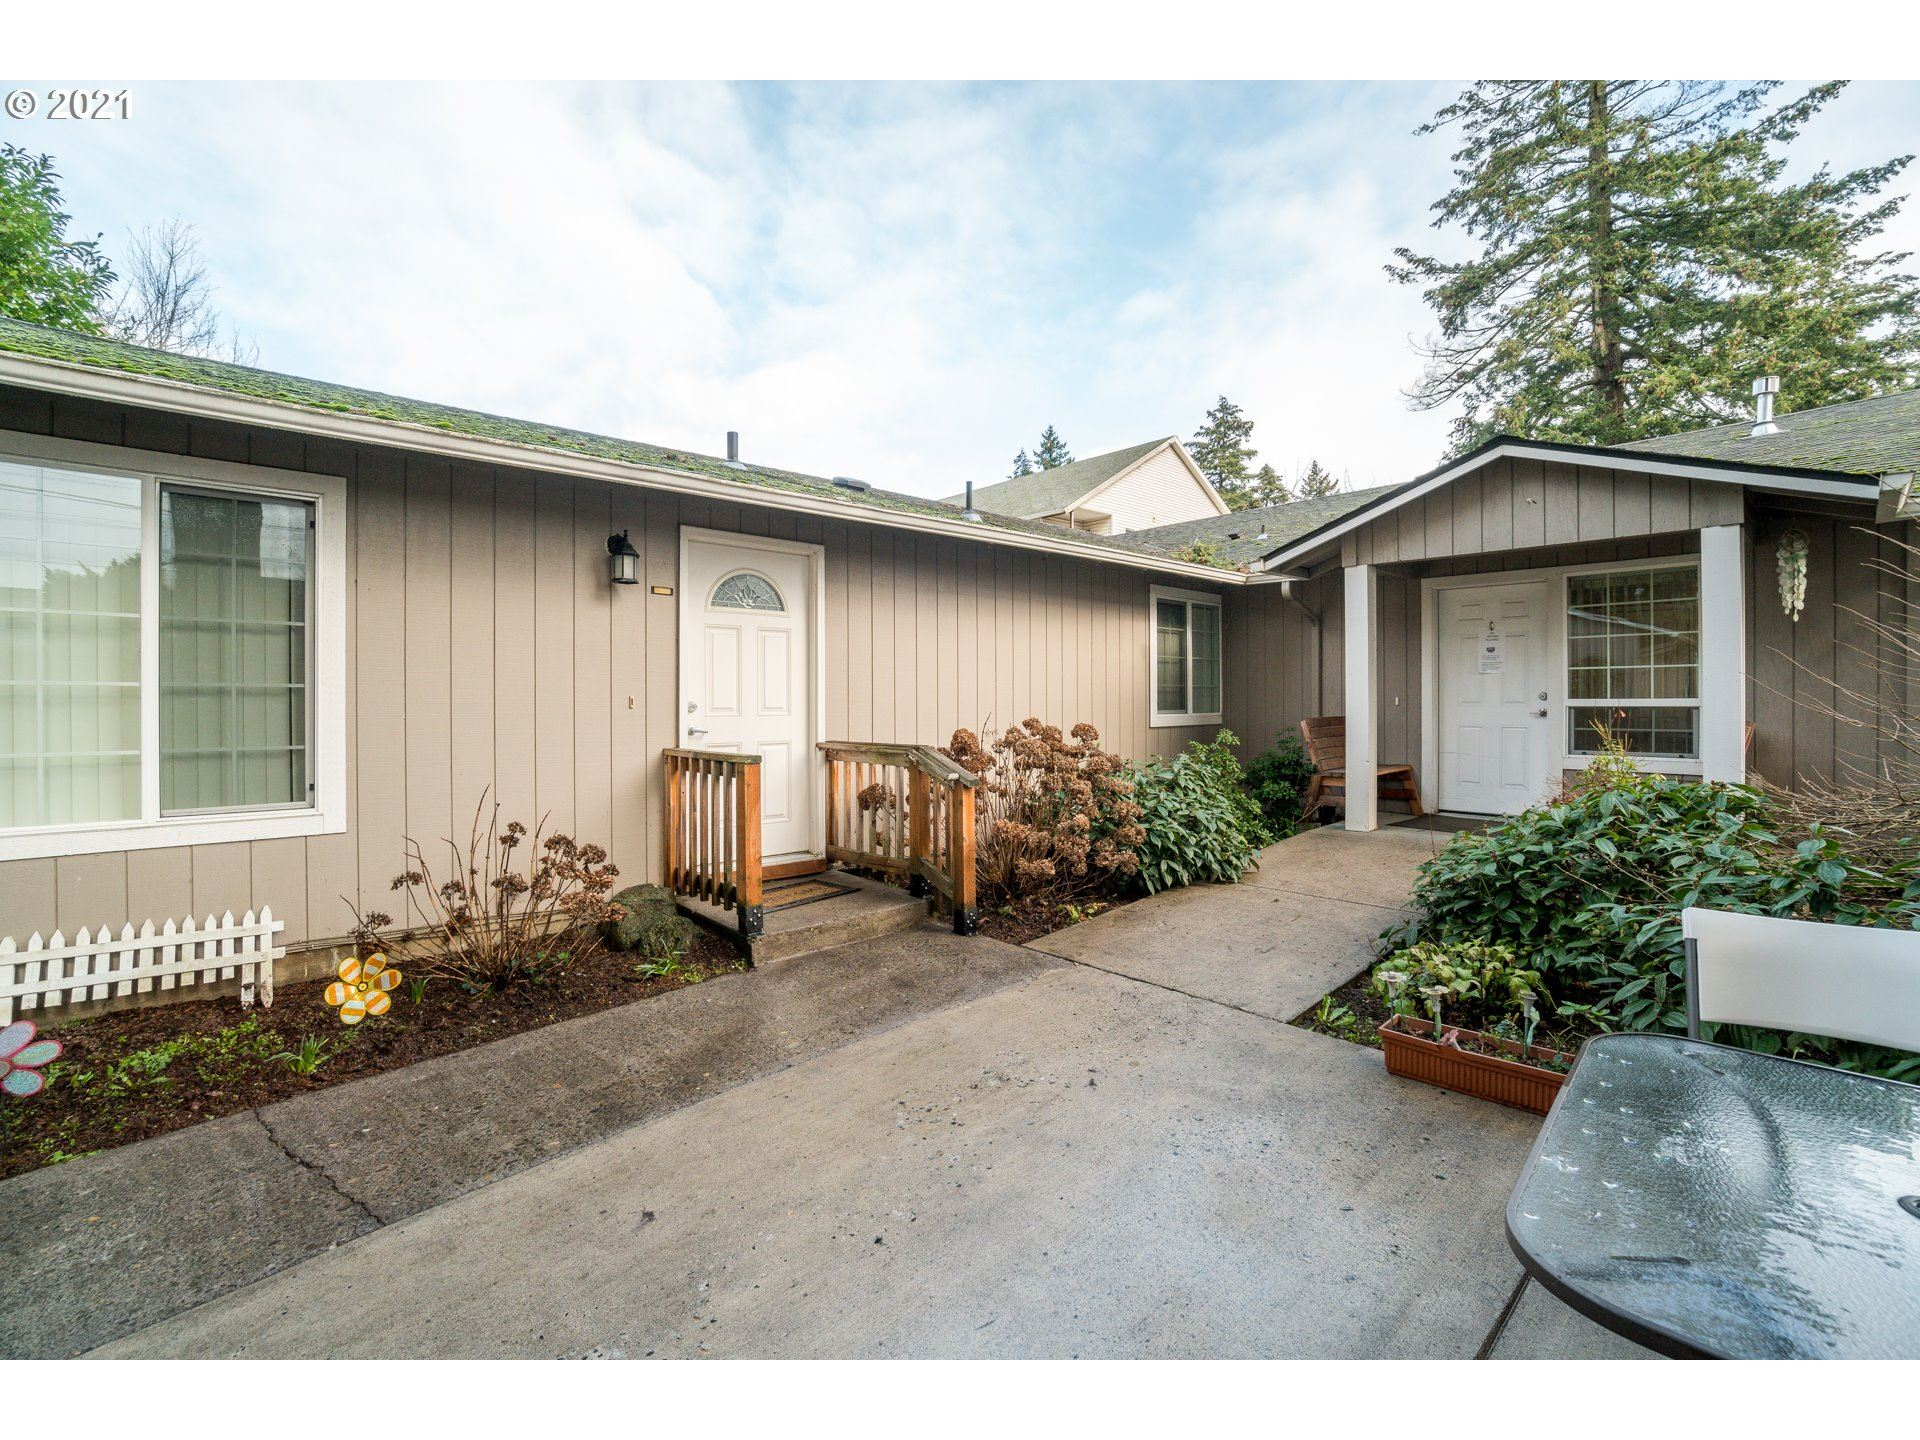 2406 SE 130TH AVE, Portland, OR 97233 - MLS#: 20205093